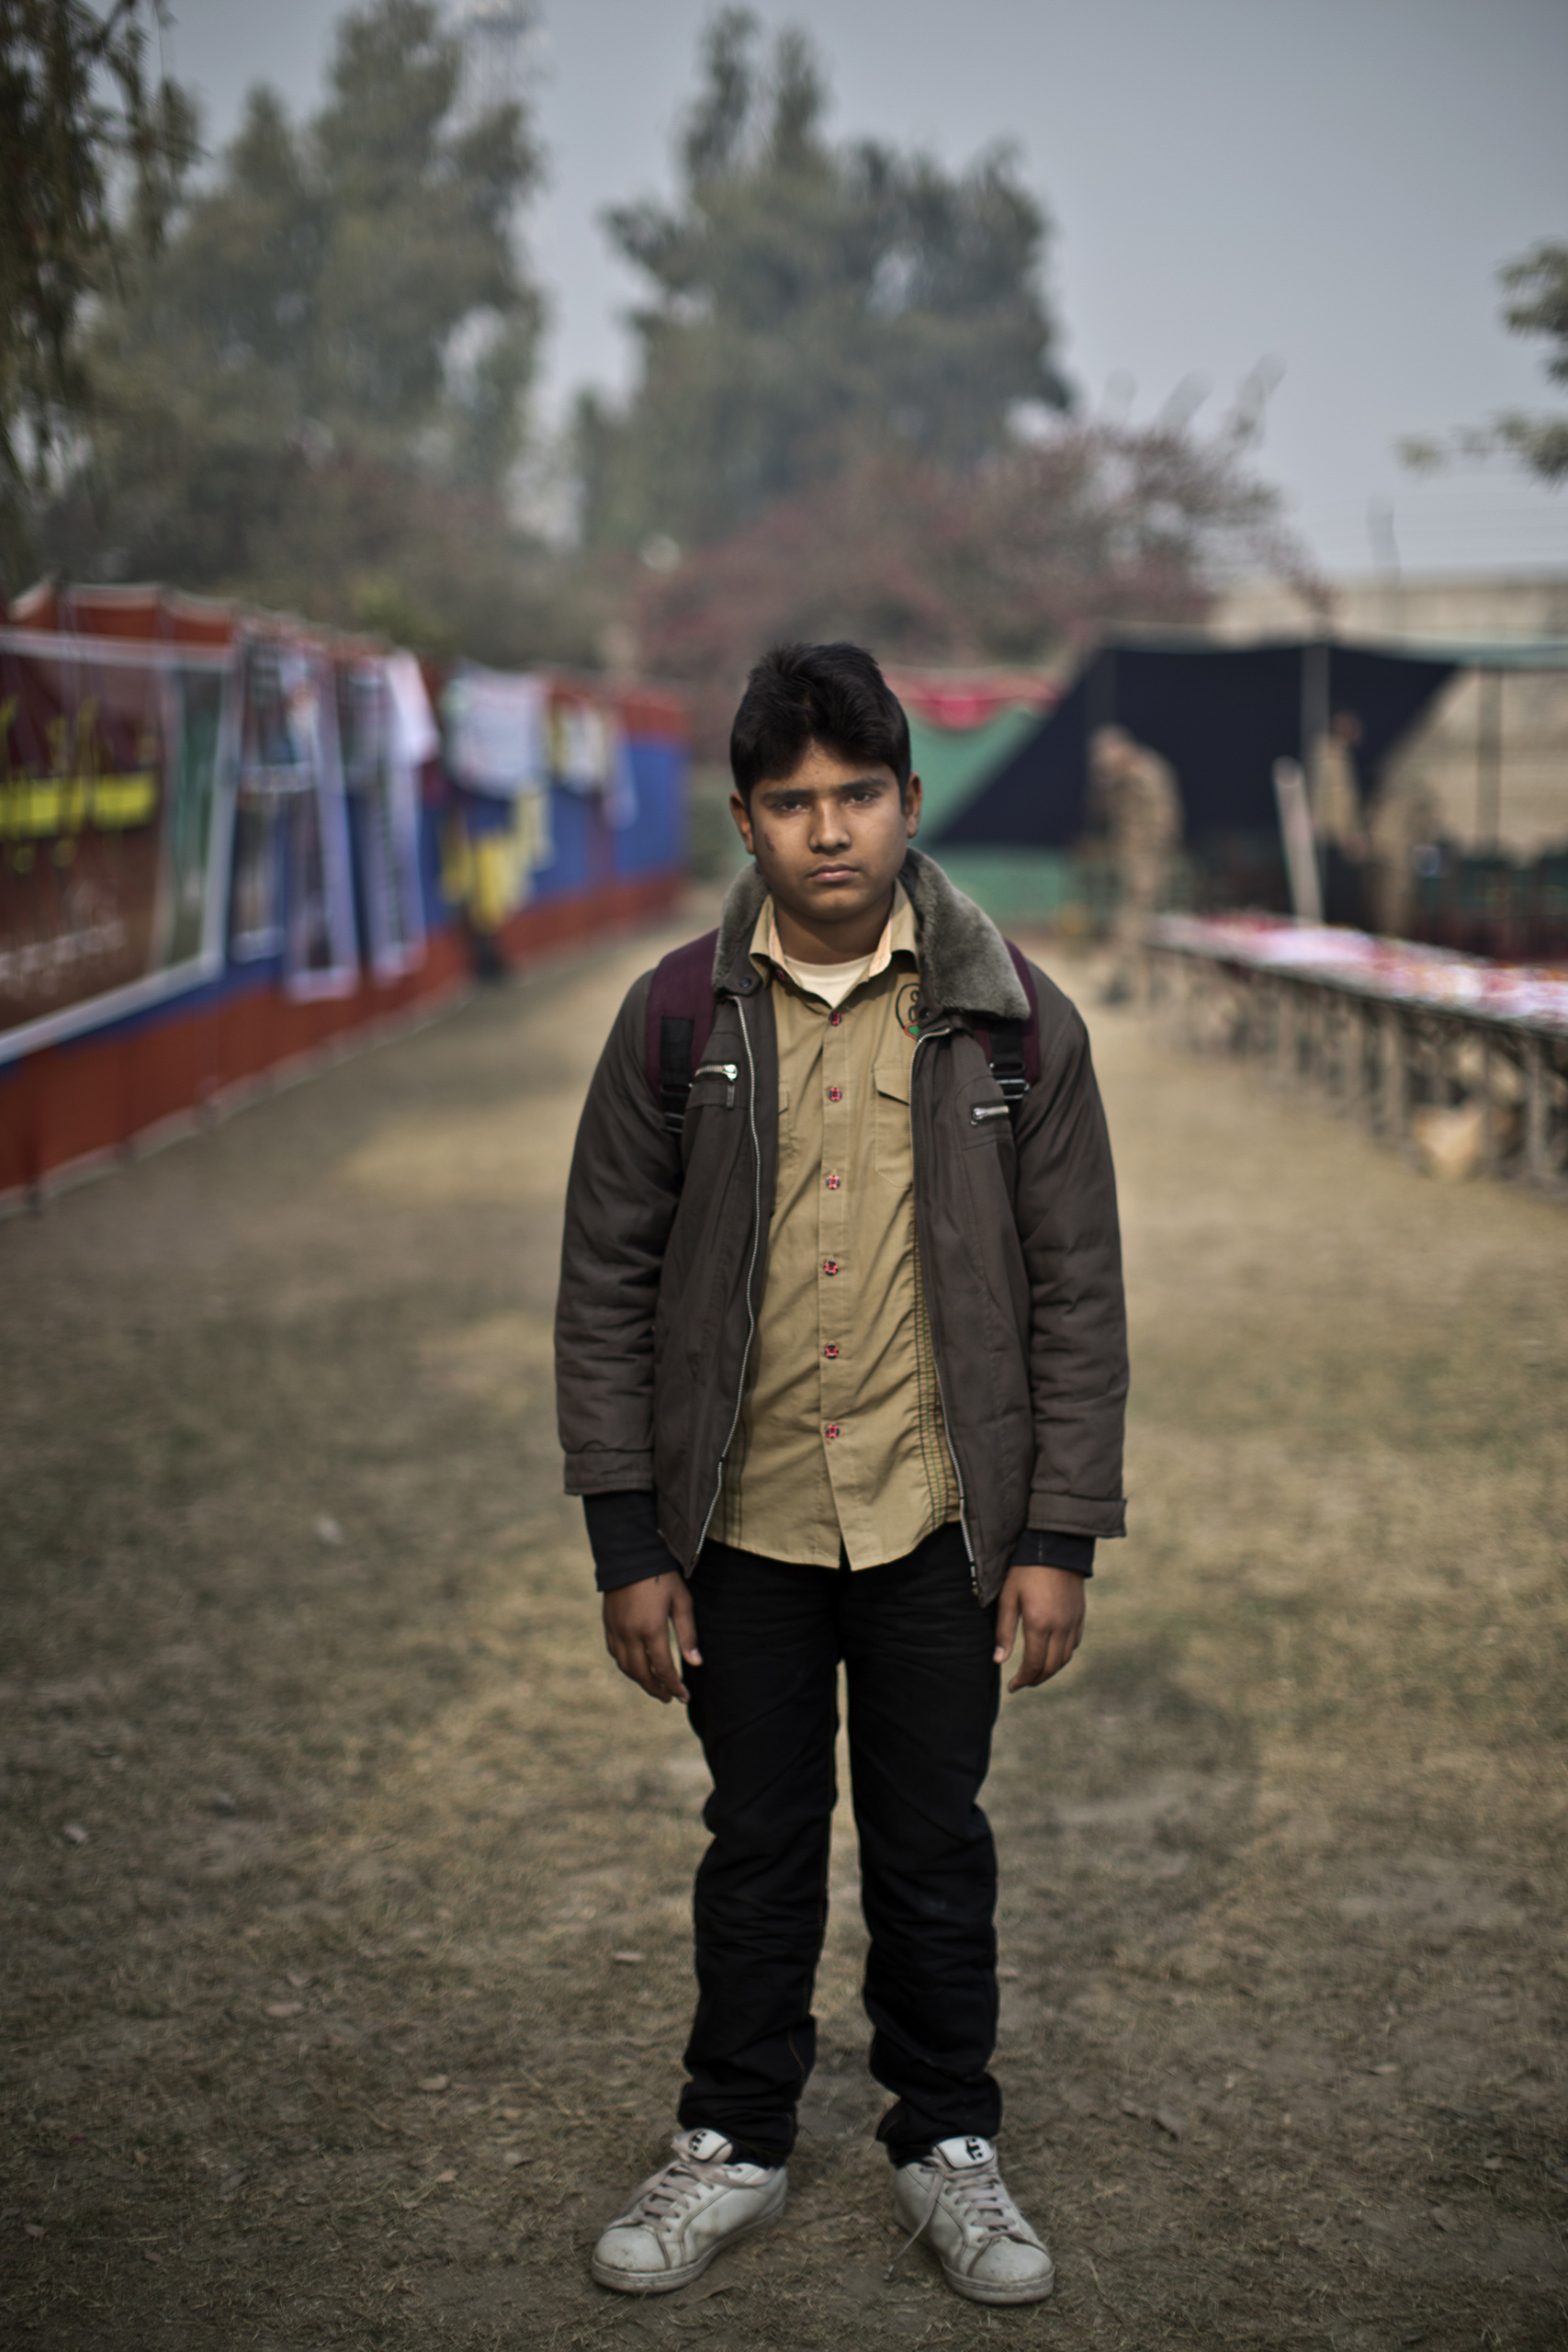 "Entekhab Alam, 14, a student who survived the Pakistani Taliban's attack on the Army Public School on Dec. 16, in the school's yard. Peshawar, Pakistan. Dec. 20, 2014.                                                                      ""Our teacher who gives us the religion class didn't come to the class, so we started playing in the classroom,"" Entekhab said. ""Few minutes after, there was a very loud sound of shooting. I blocked my ears with my hands and ran outside along with a friend, and there was shooting right behind us, and when I reached the gate I noticed that my poor friend got killed. He didn't make it to the gate."""